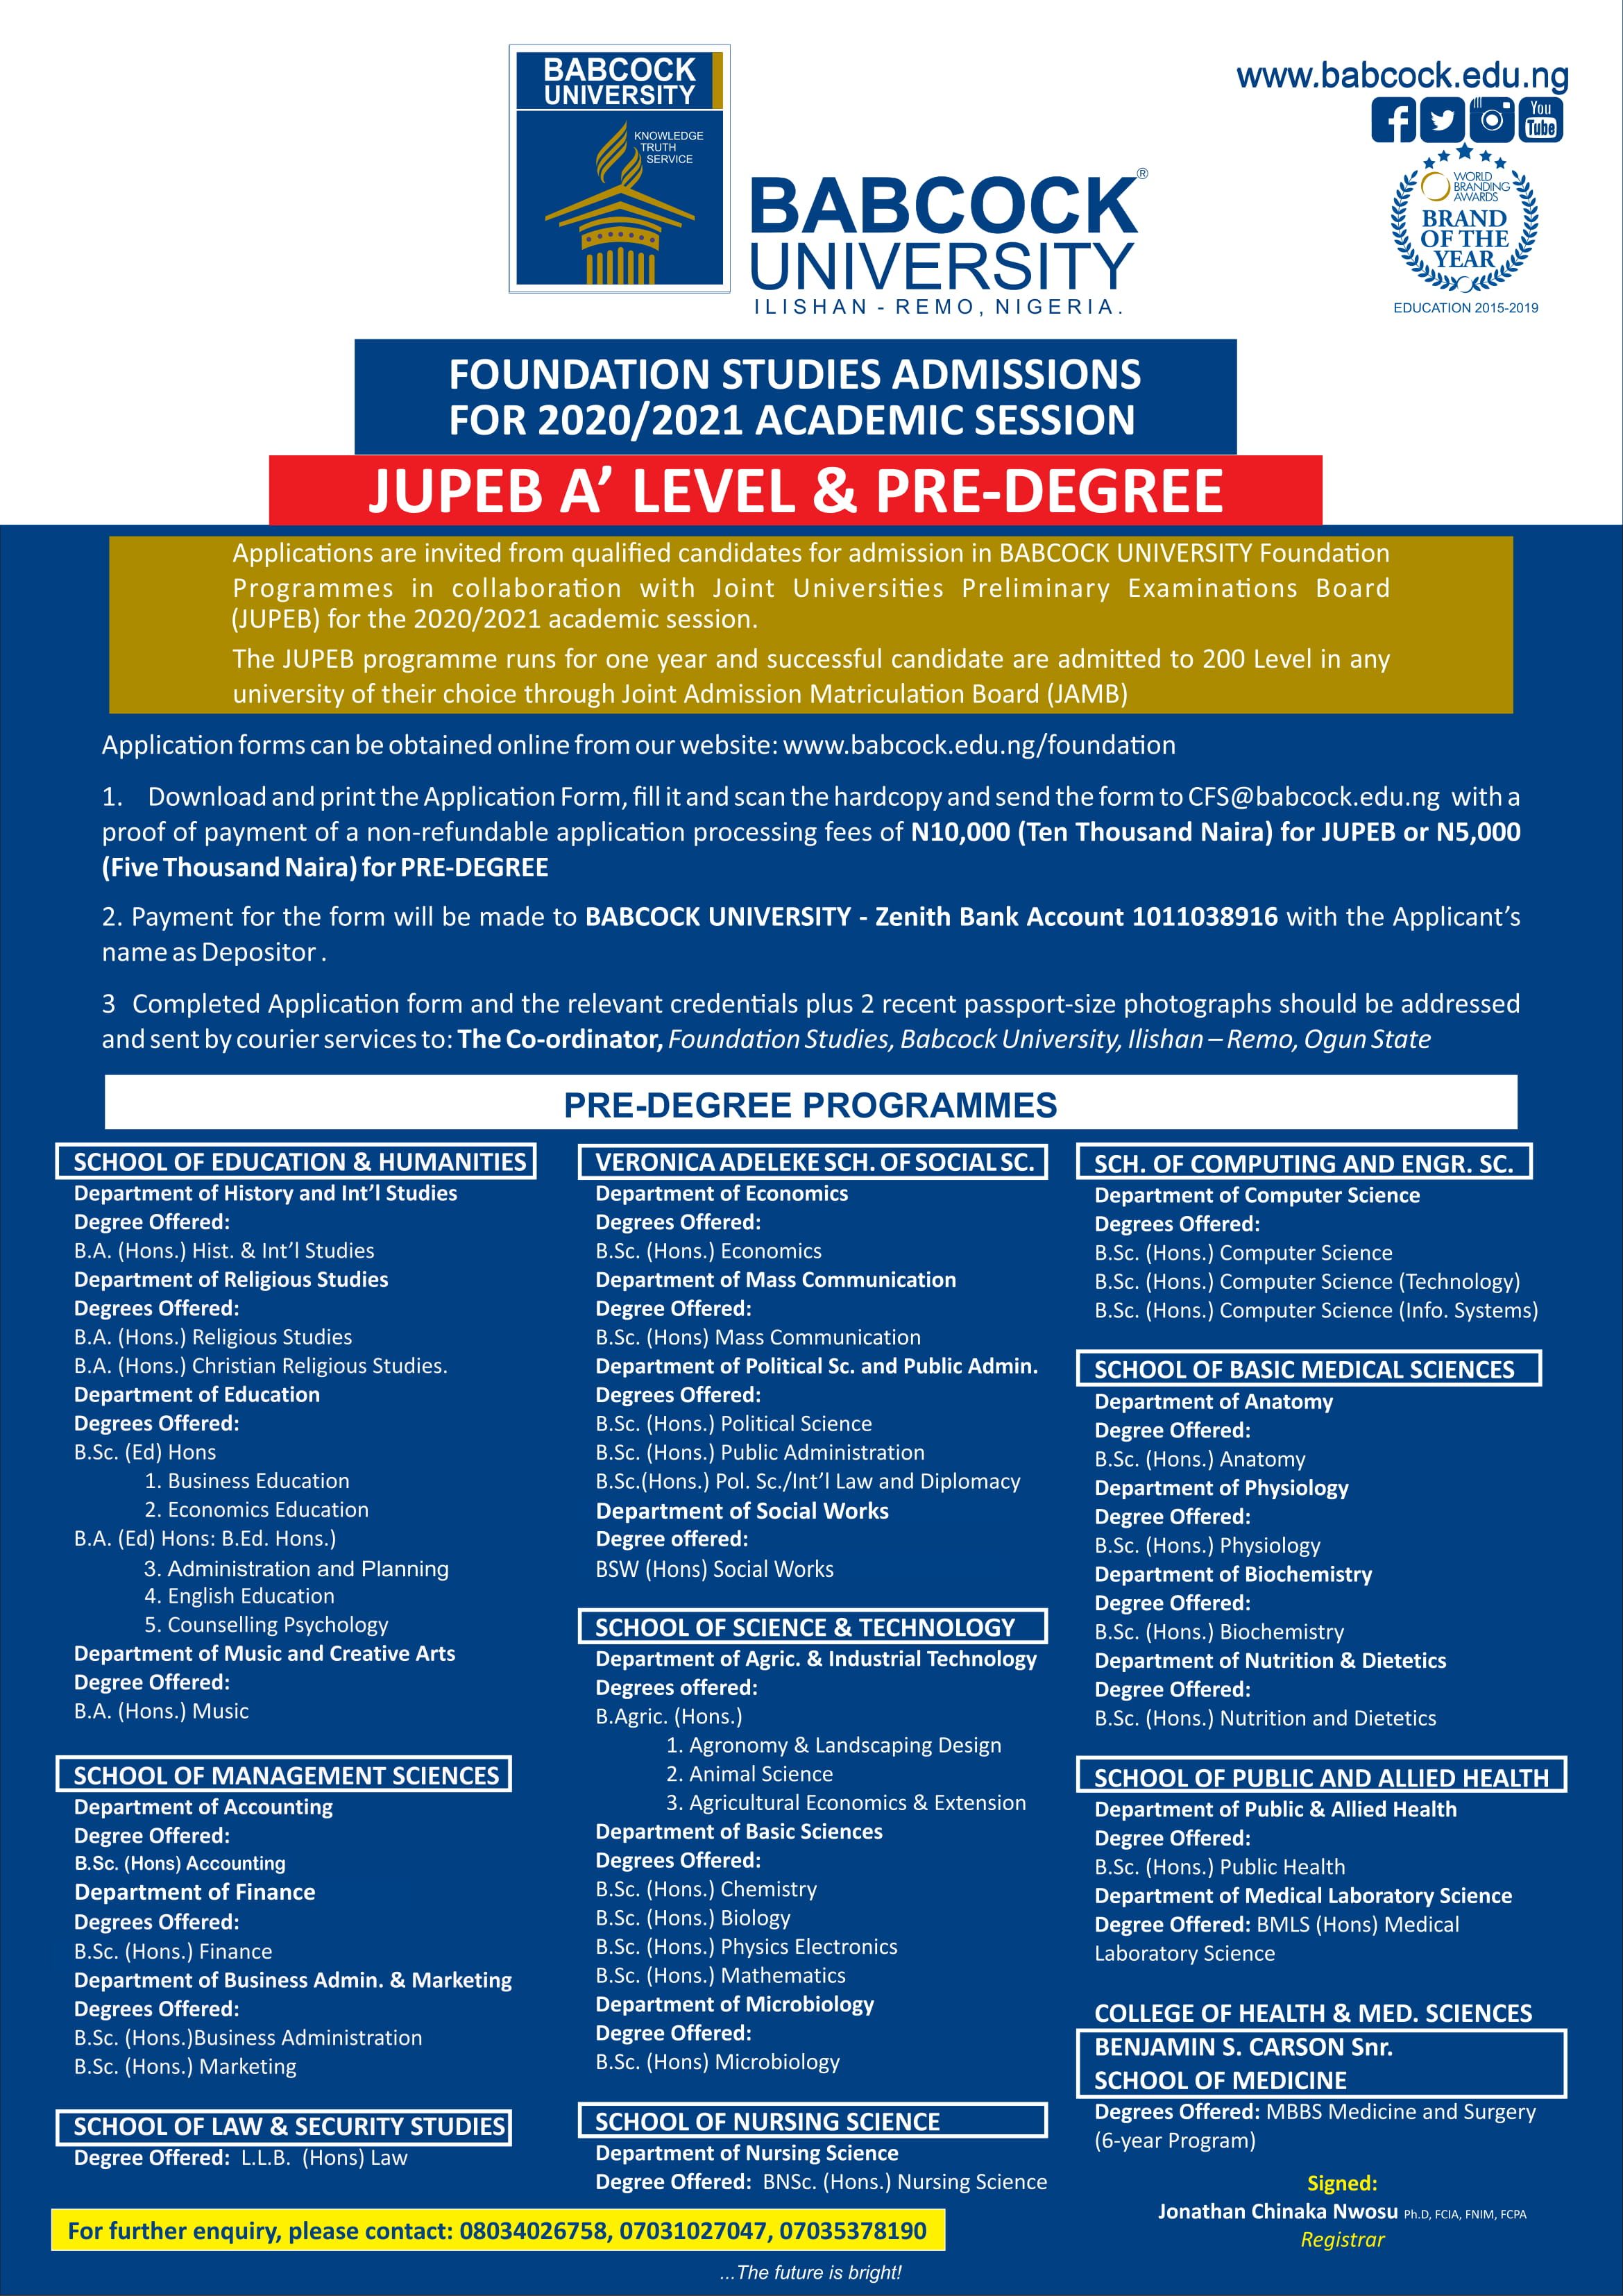 JUPEB A'LEVEL and PRE-DEGREE Programs